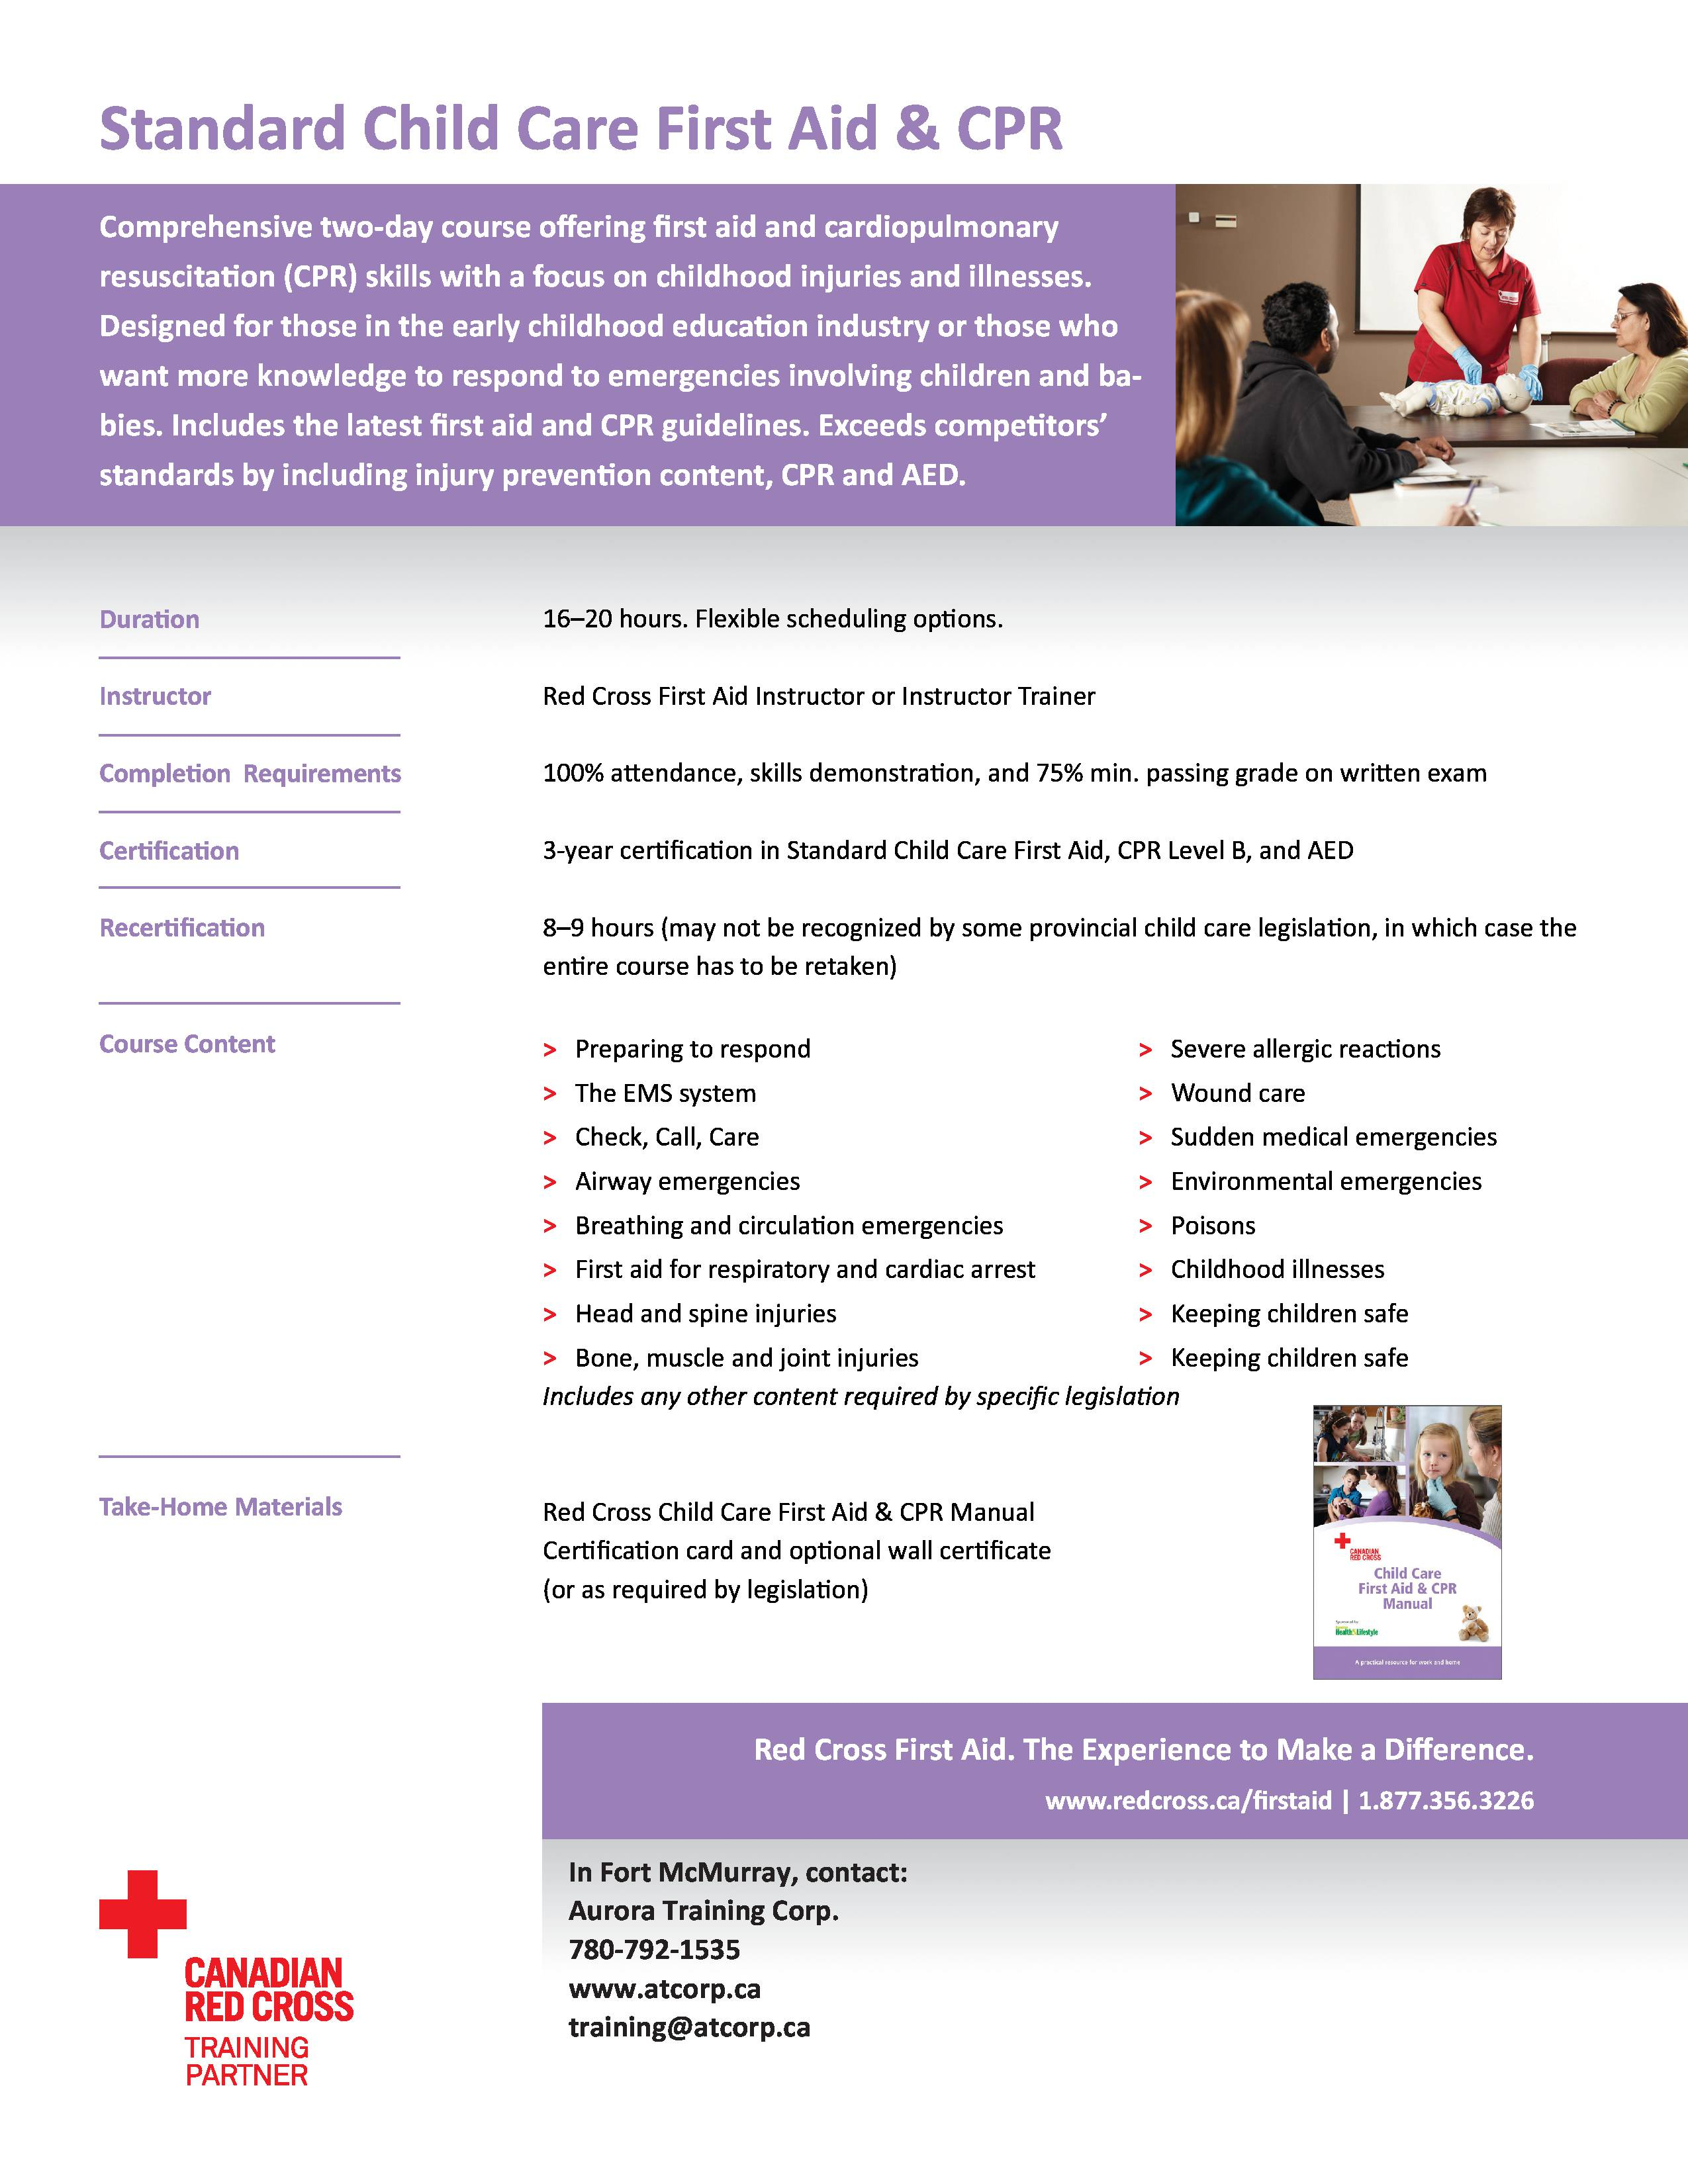 Full classes aurora training corp standard childcare first aid with level b cpr 12500 xflitez Image collections